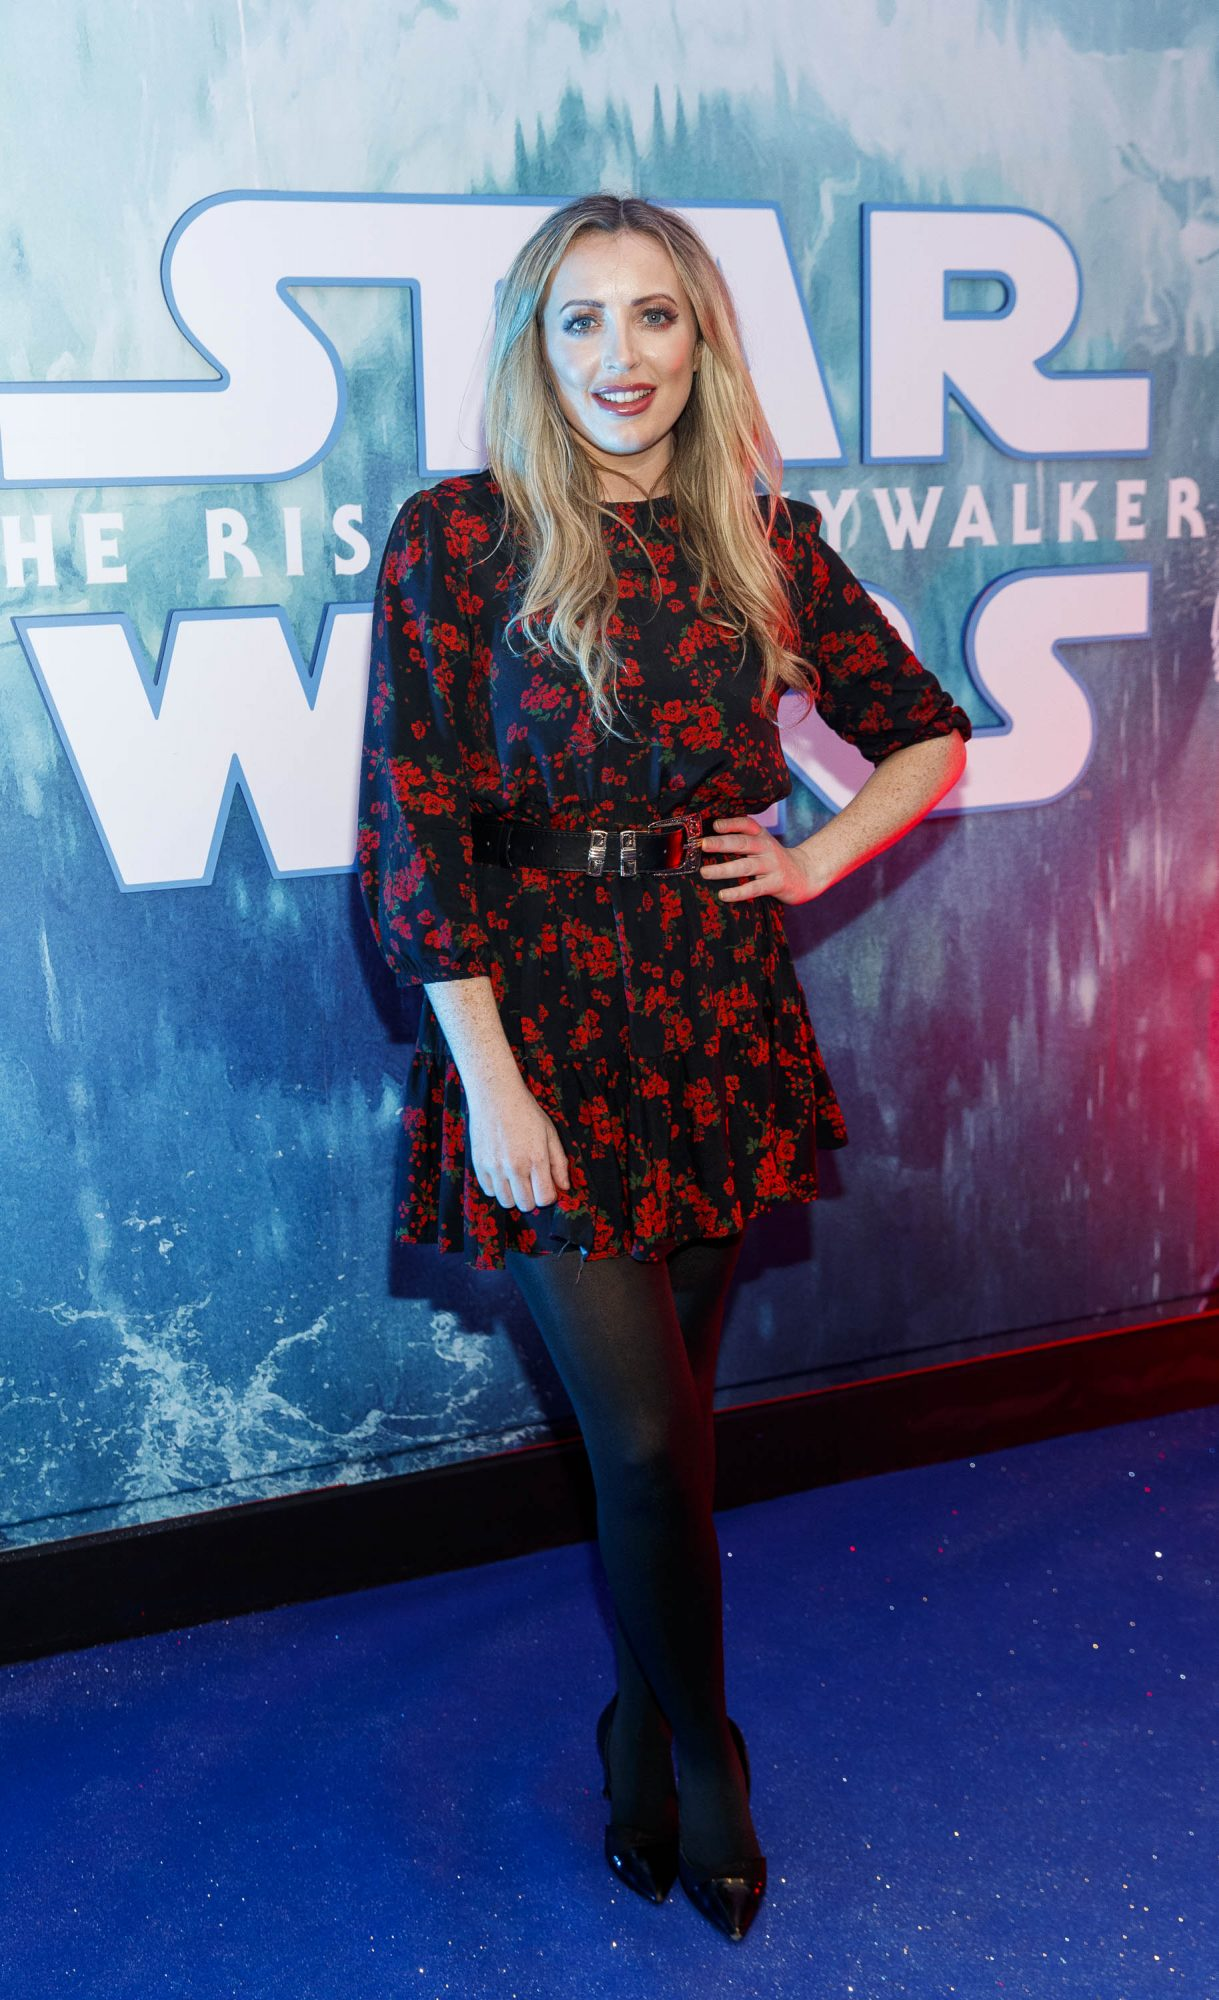 AJ Fitzsimmons pictured at the Irish premiere screening of Star Wars: The Rise of Skywalker at Cineworld, Dublin. Picture: Andres Poveda